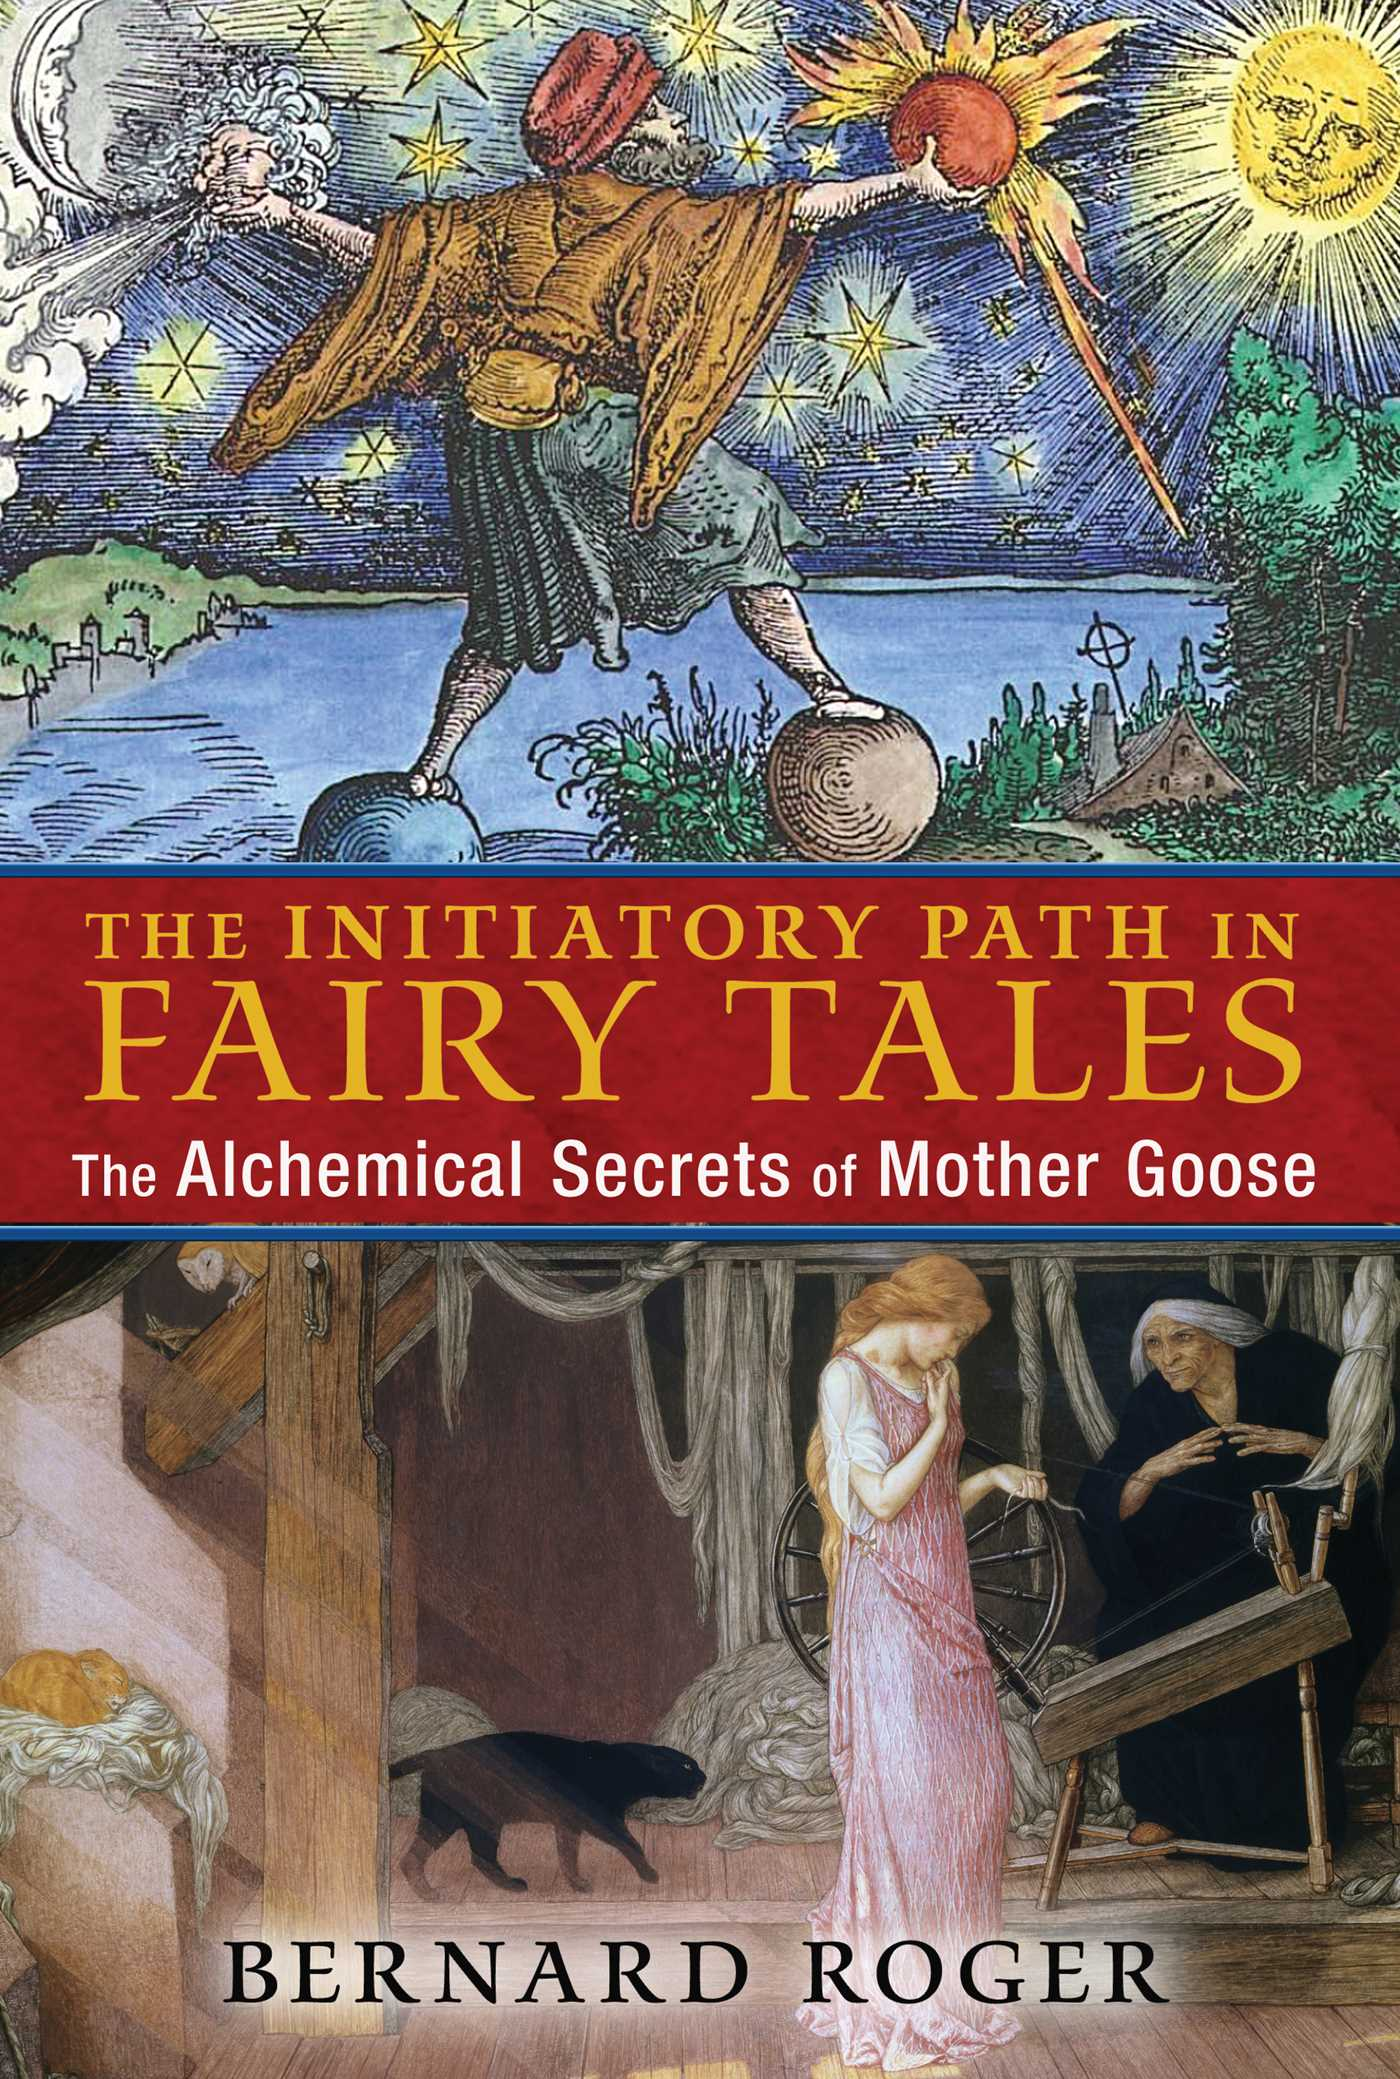 The initiatory path in fairy tales 9781620554036 hr